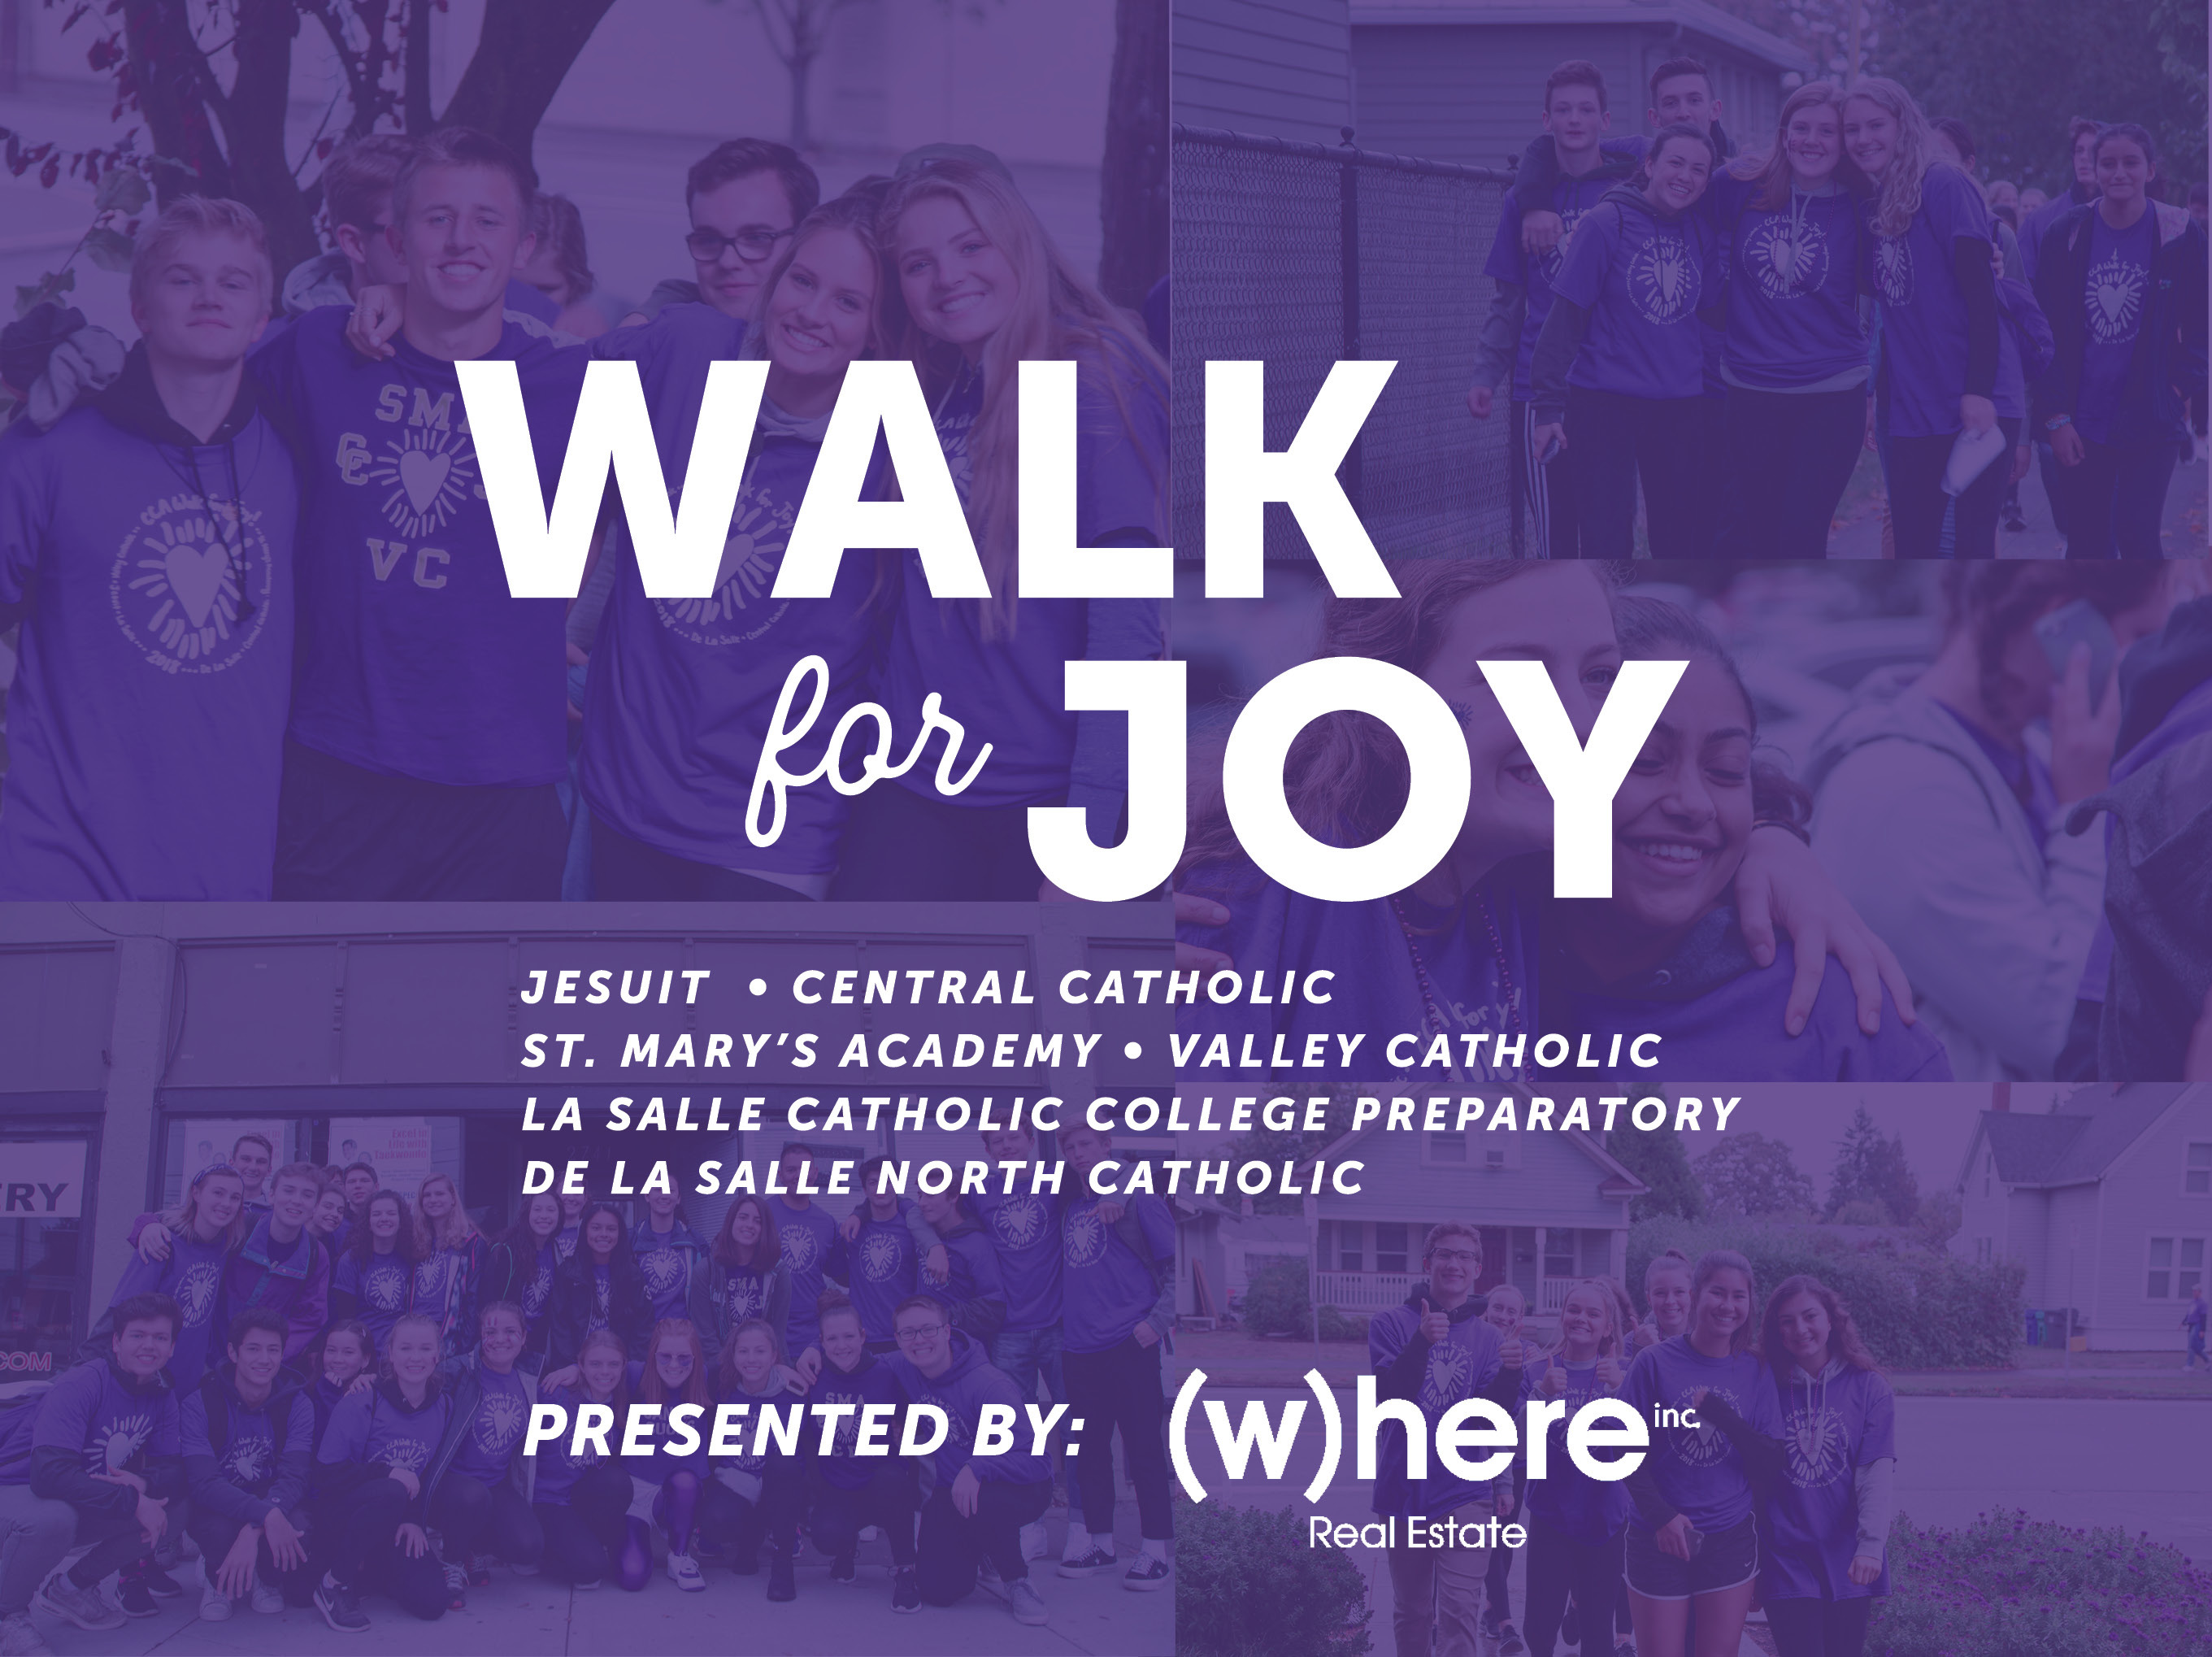 Walk for joy mobile cause